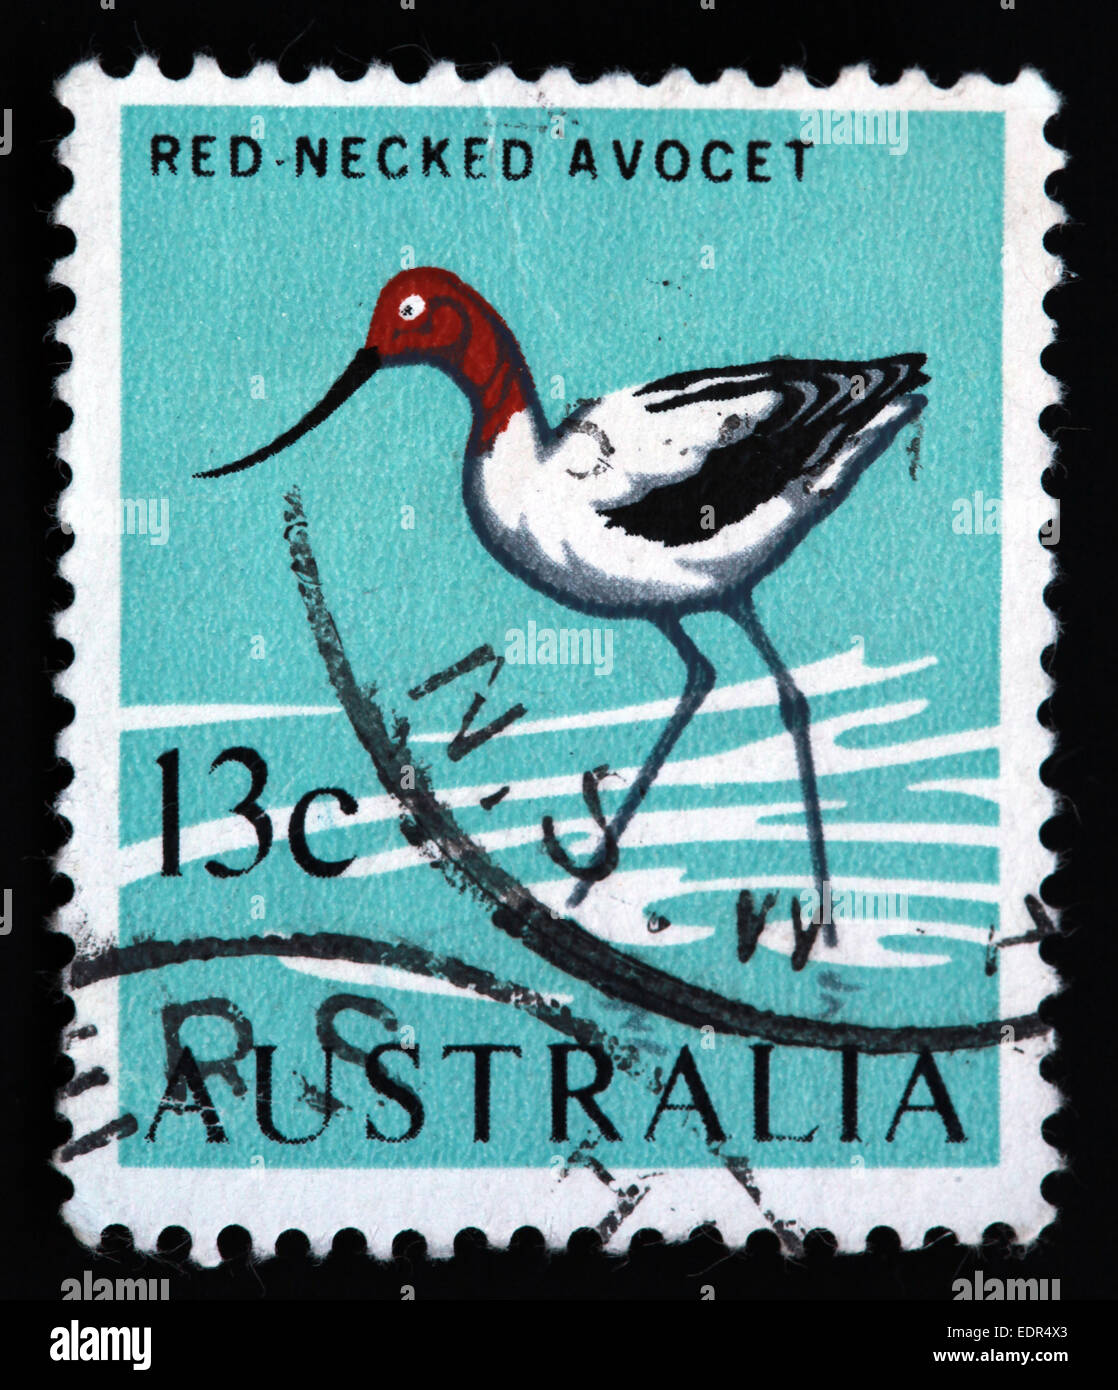 amimal,stamps,Australia,illustration,Used and Postmarked,Used,and,postmarked,perforated,Australia,stamp,Used,and,postmarked,Australia,Austrailian,Stamp,post,posting,mail,hobby,perforation,mark,postage,stamp,print,stamp,cancelled,stamp,payment,correspondence,postman,collection,col,Gotonysmith,post,posting,mail,hobby,perforation,mark,postage,stamp,print,stamp,cancelled,canceled,stamp,payment,correspondence,postman,collection,collector,philately,philatelist,letter,price,history,retro,Australian,Vintage,delivery,date,relationship,communication,Oz,Australia,DownUnder,classic rare unique Austrailian financial,investment,invest,value,British,empire,nation,canceled,printed on black background,close-up,closeup,close,up,sent,send,philately,mailing,shipping,postoffice,office,isolated,circa,special,colour,color,postmarked,marked,airmail,aged,antique,retro,cutting,historic,old,stamps,collection,stamp collection,album,Timbre,Sello,Stempel,Selo,Down Under,Black background